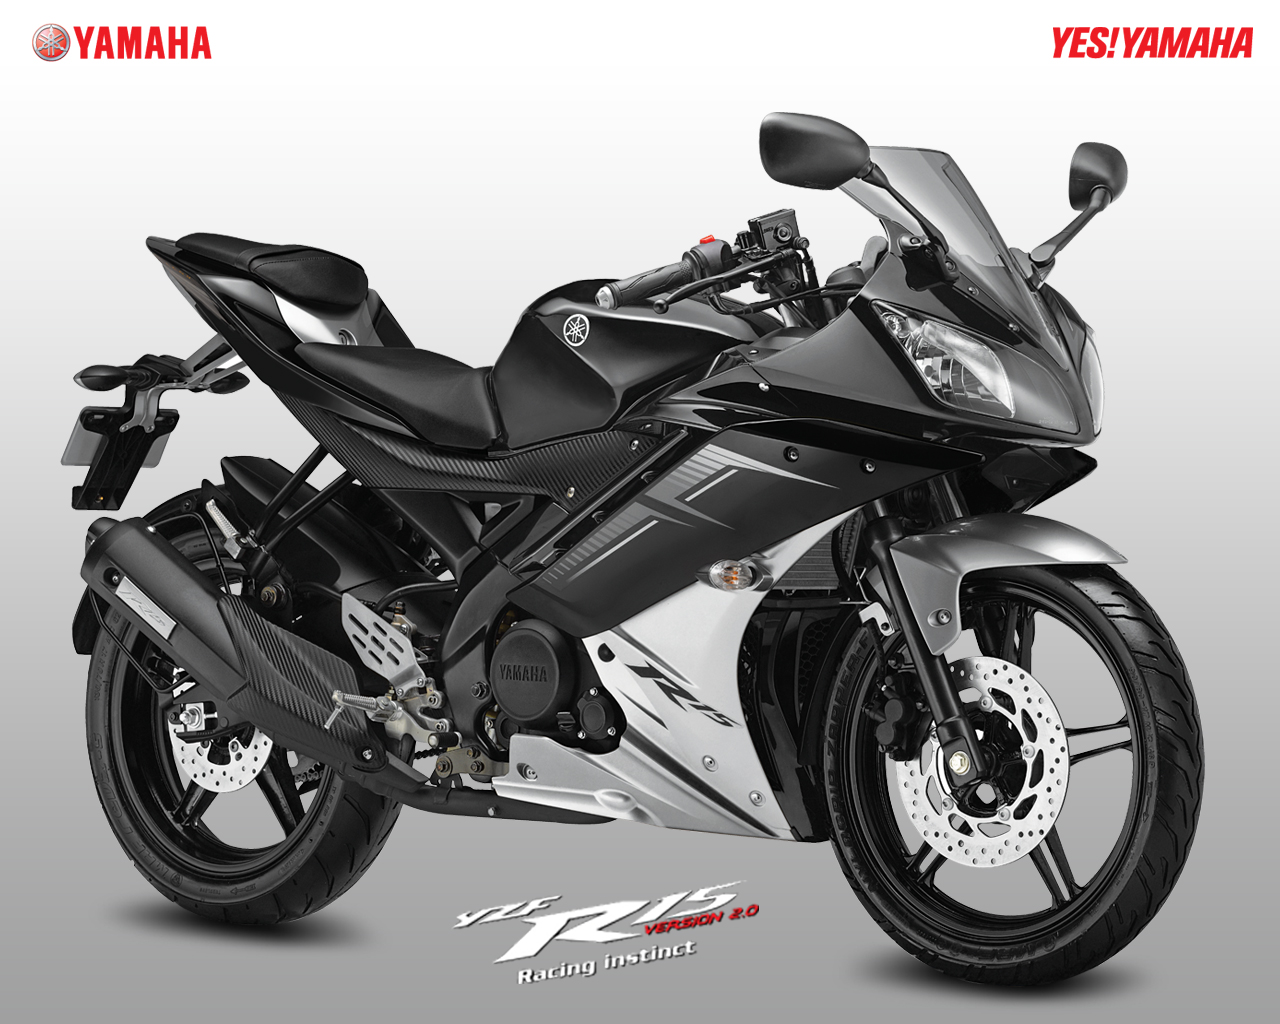 Amazing Yamaha YZF-R15 Pictures & Backgrounds